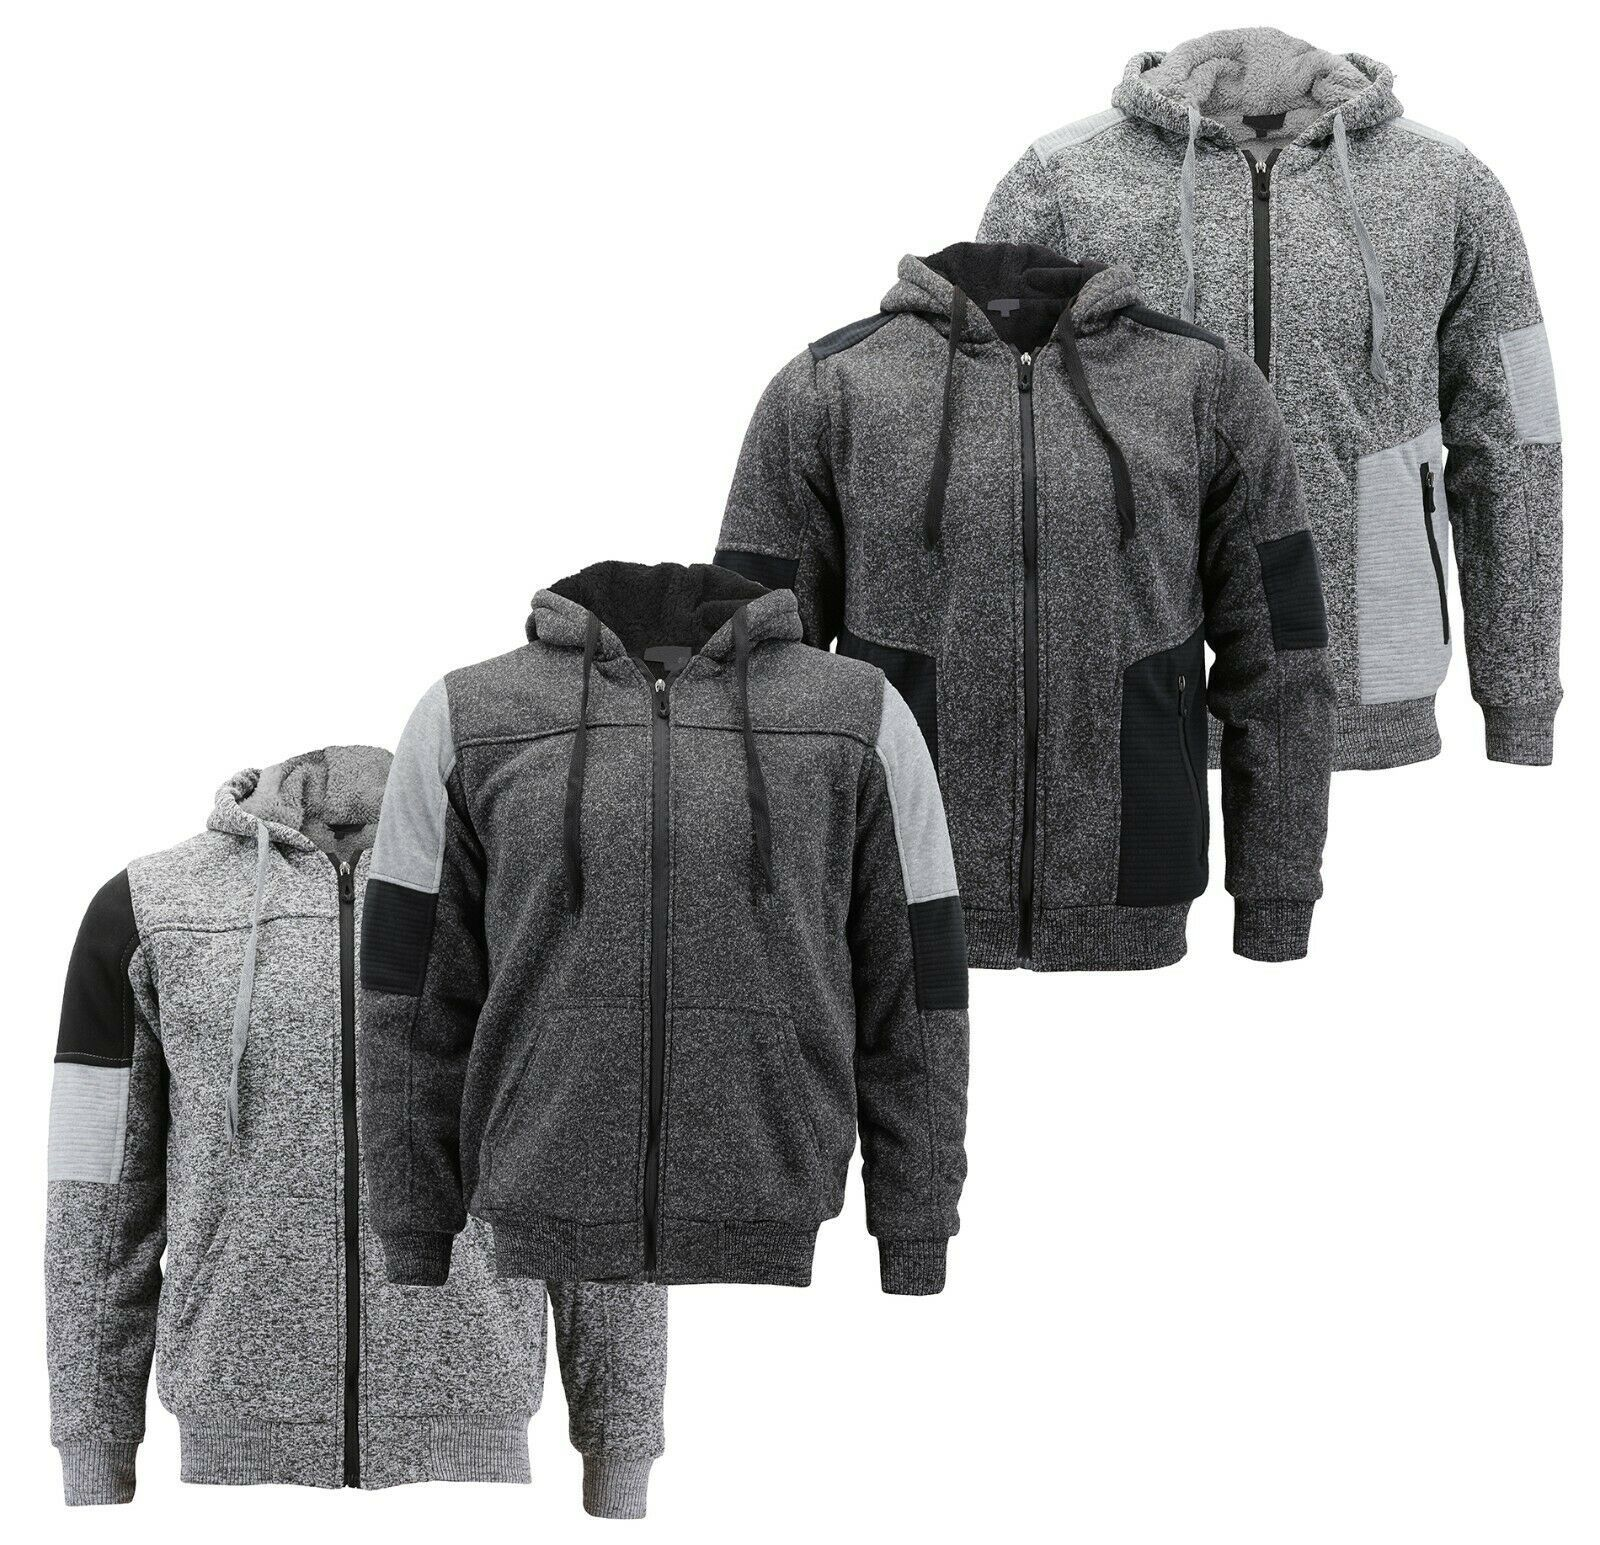 Boy's Soft Sherpa Lined Two Tone Quilted Juniors ZipUp Fleece Hoodie Kids Jacket